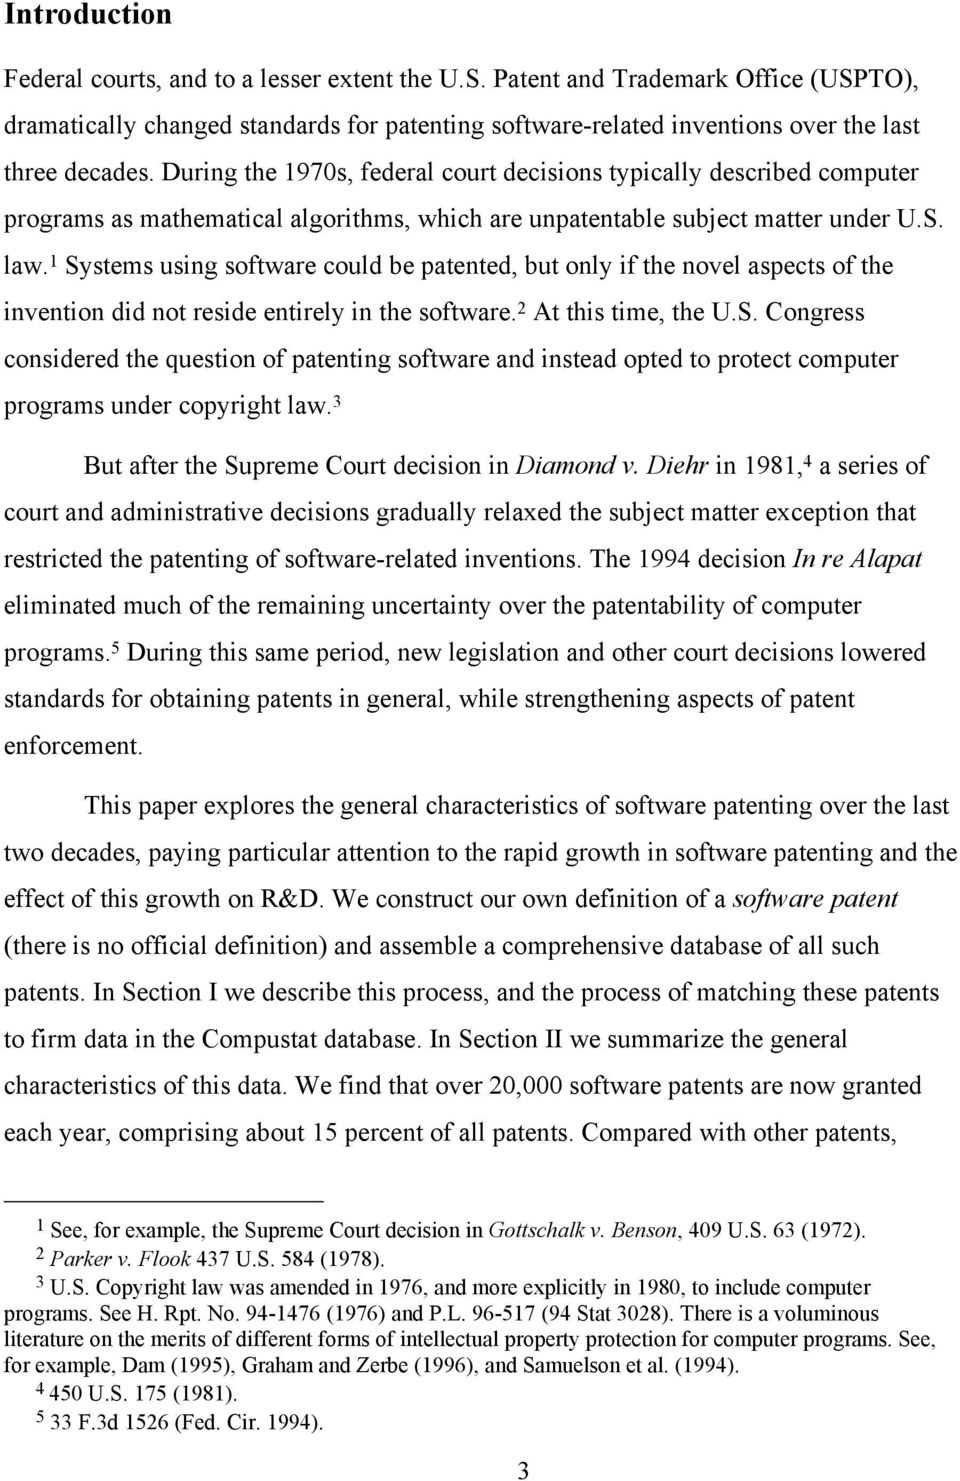 1 Systems using software could be patented, but only if the novel aspects of the invention did not reside entirely in the software. 2 At this time, the U.S. Congress considered the question of patenting software and instead opted to protect computer programs under copyright law.